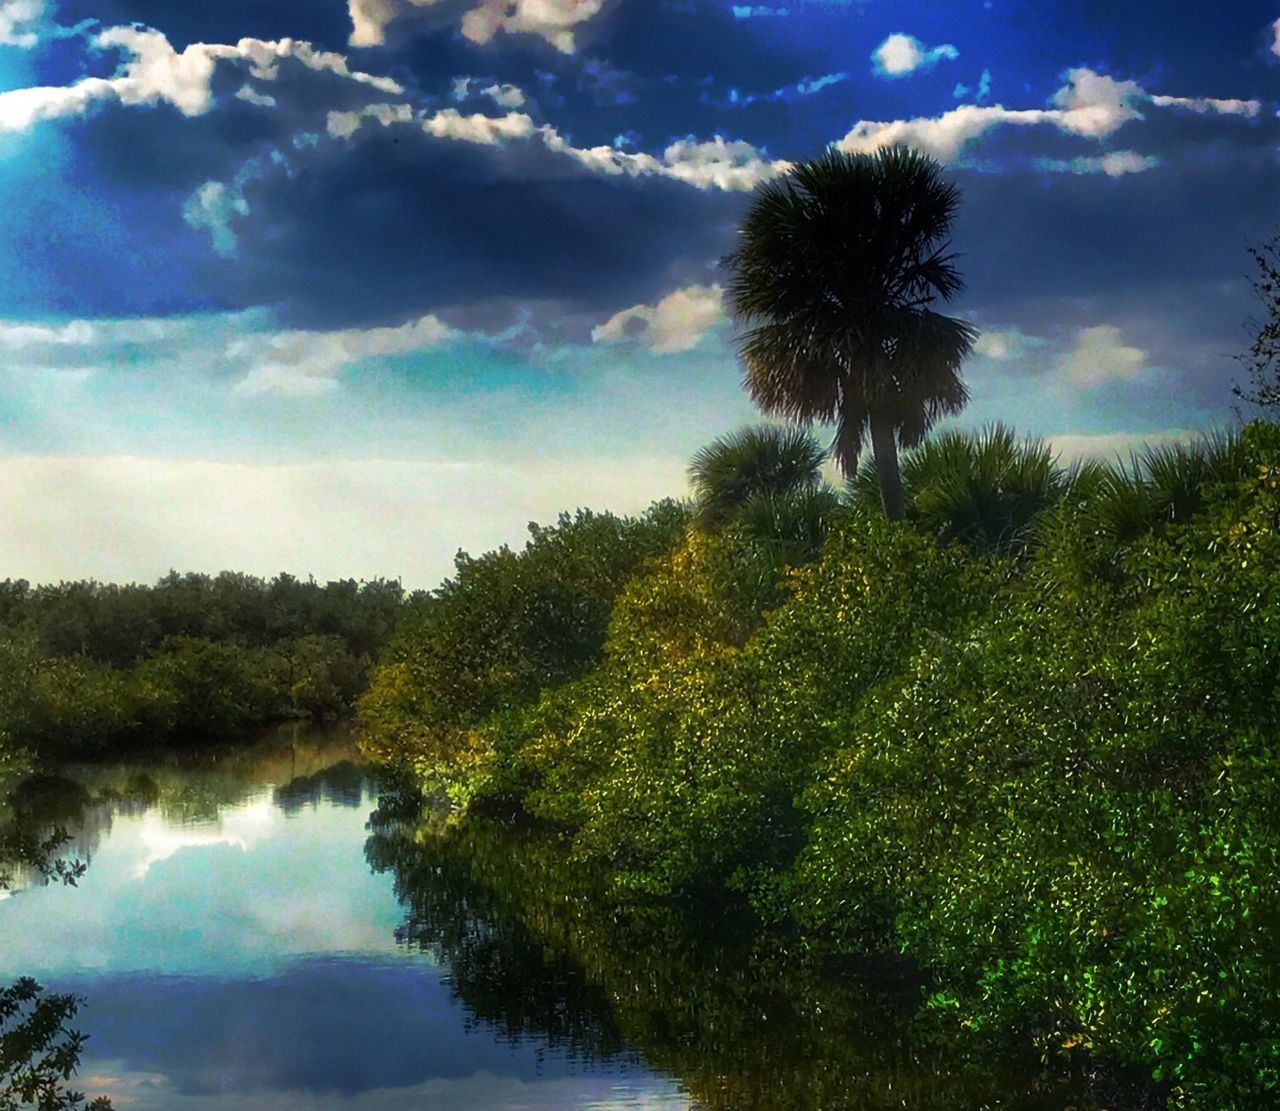 Mangroves Water Reflections Tree Sky Nature Growth Tranquil Scene Reflection Tranquility Beauty In Nature Cloud - Sky Palm Tree Outdoors No People Day